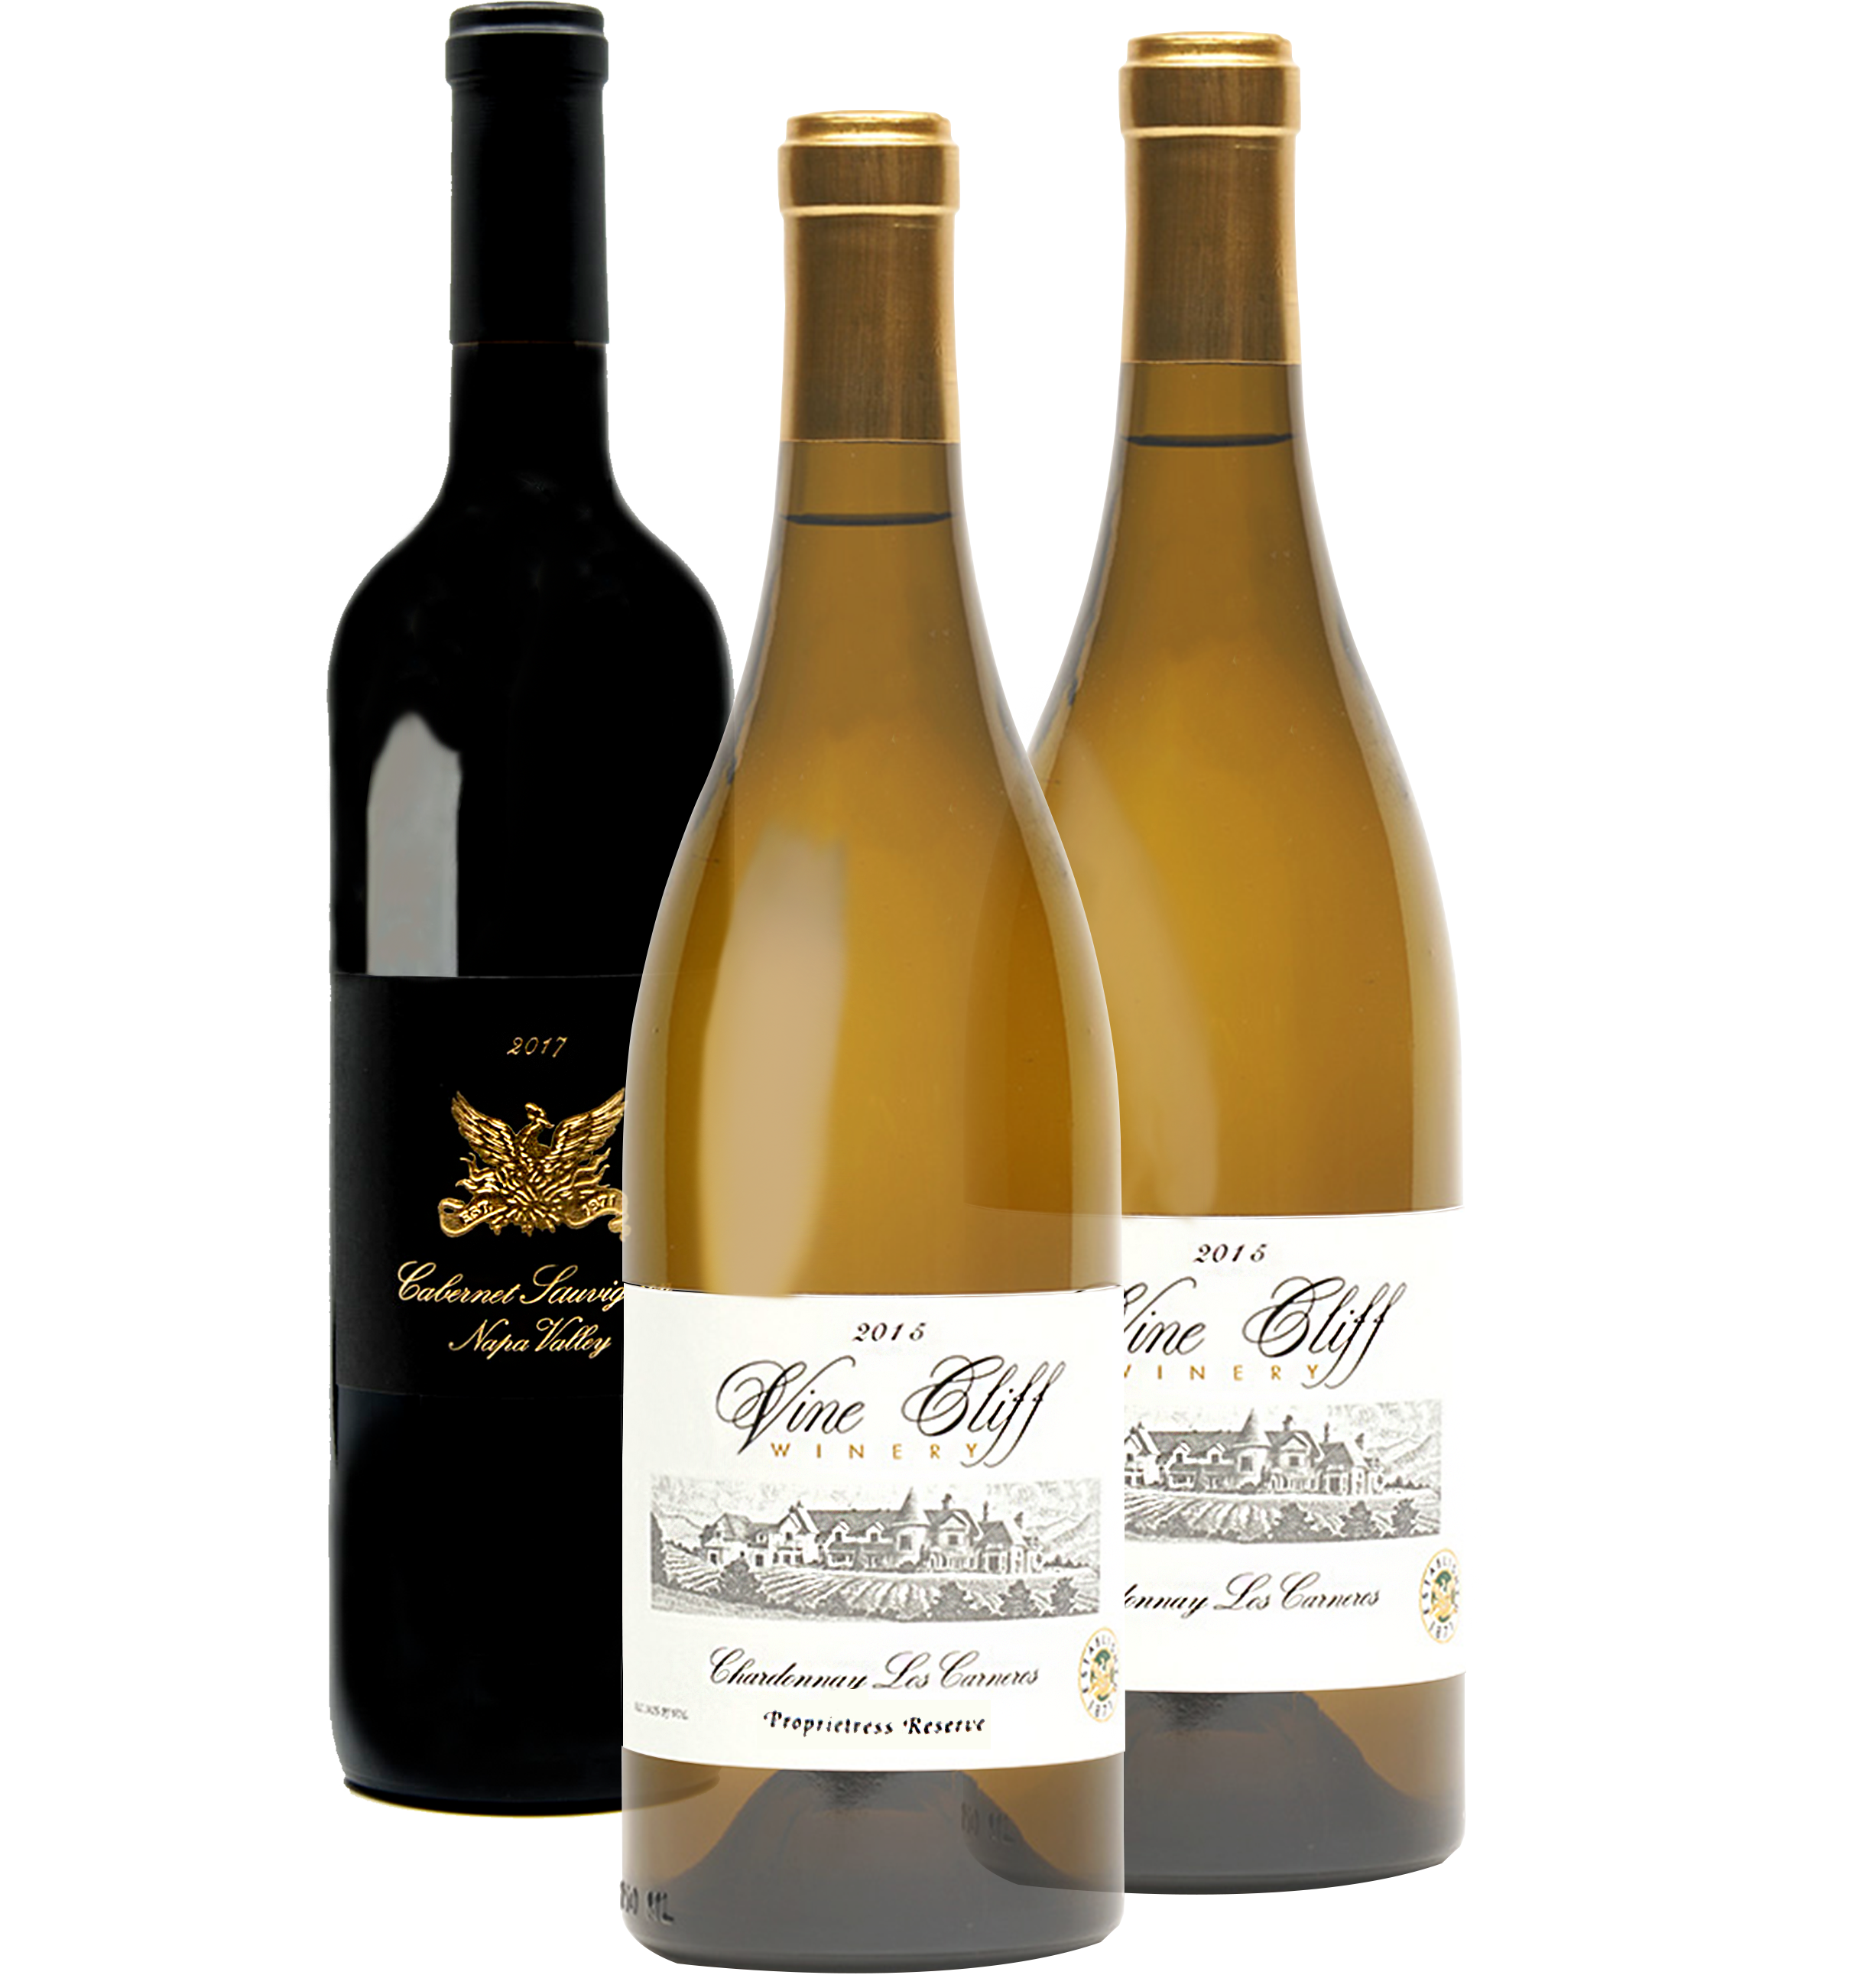 Vine Cliff Wines